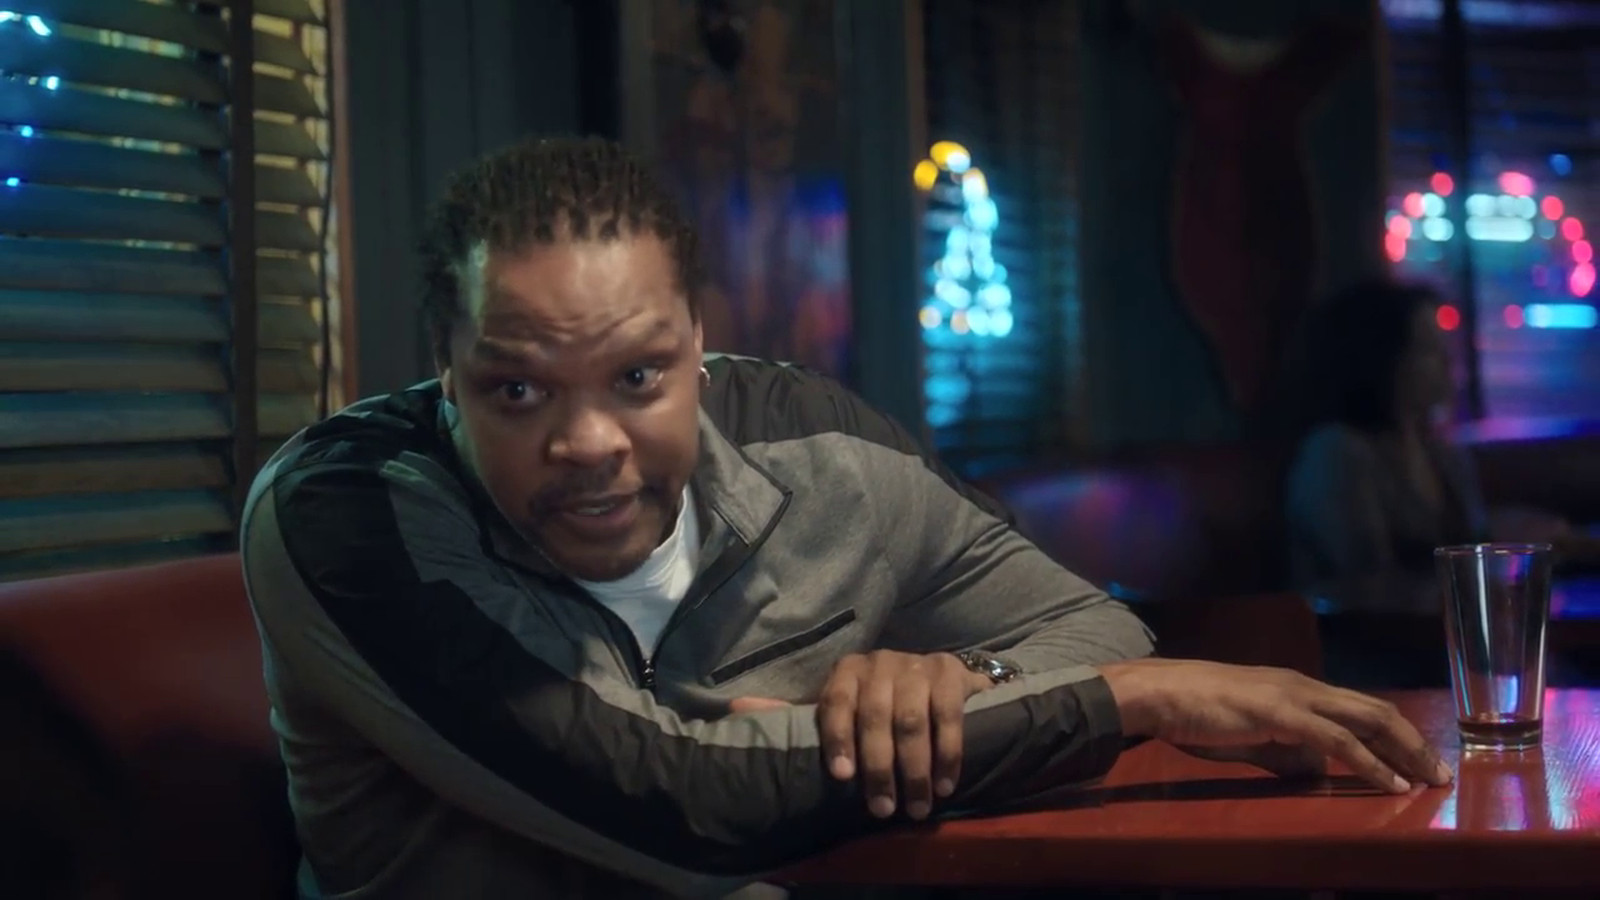 Latrell sprewell gives pessimistic life advice to young girl in